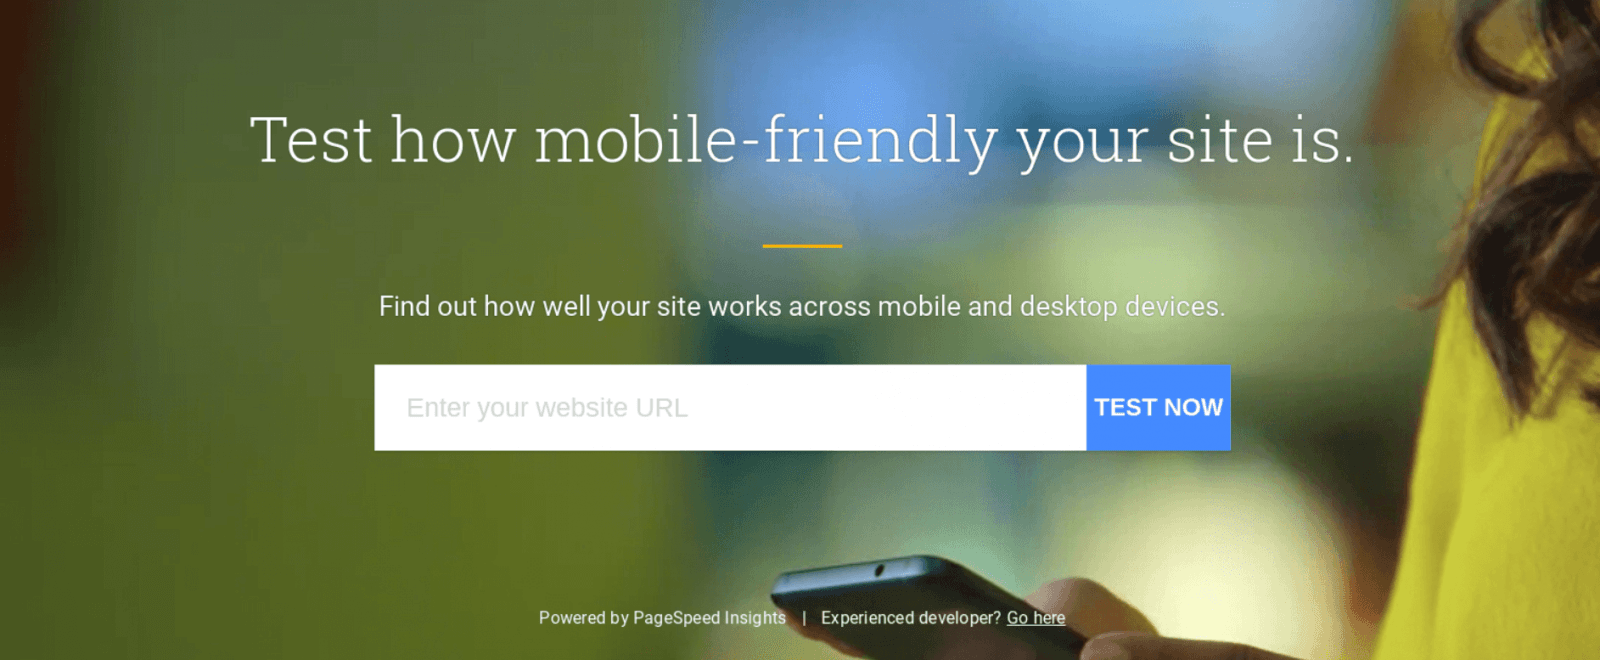 Test how mobile-friendly your website is